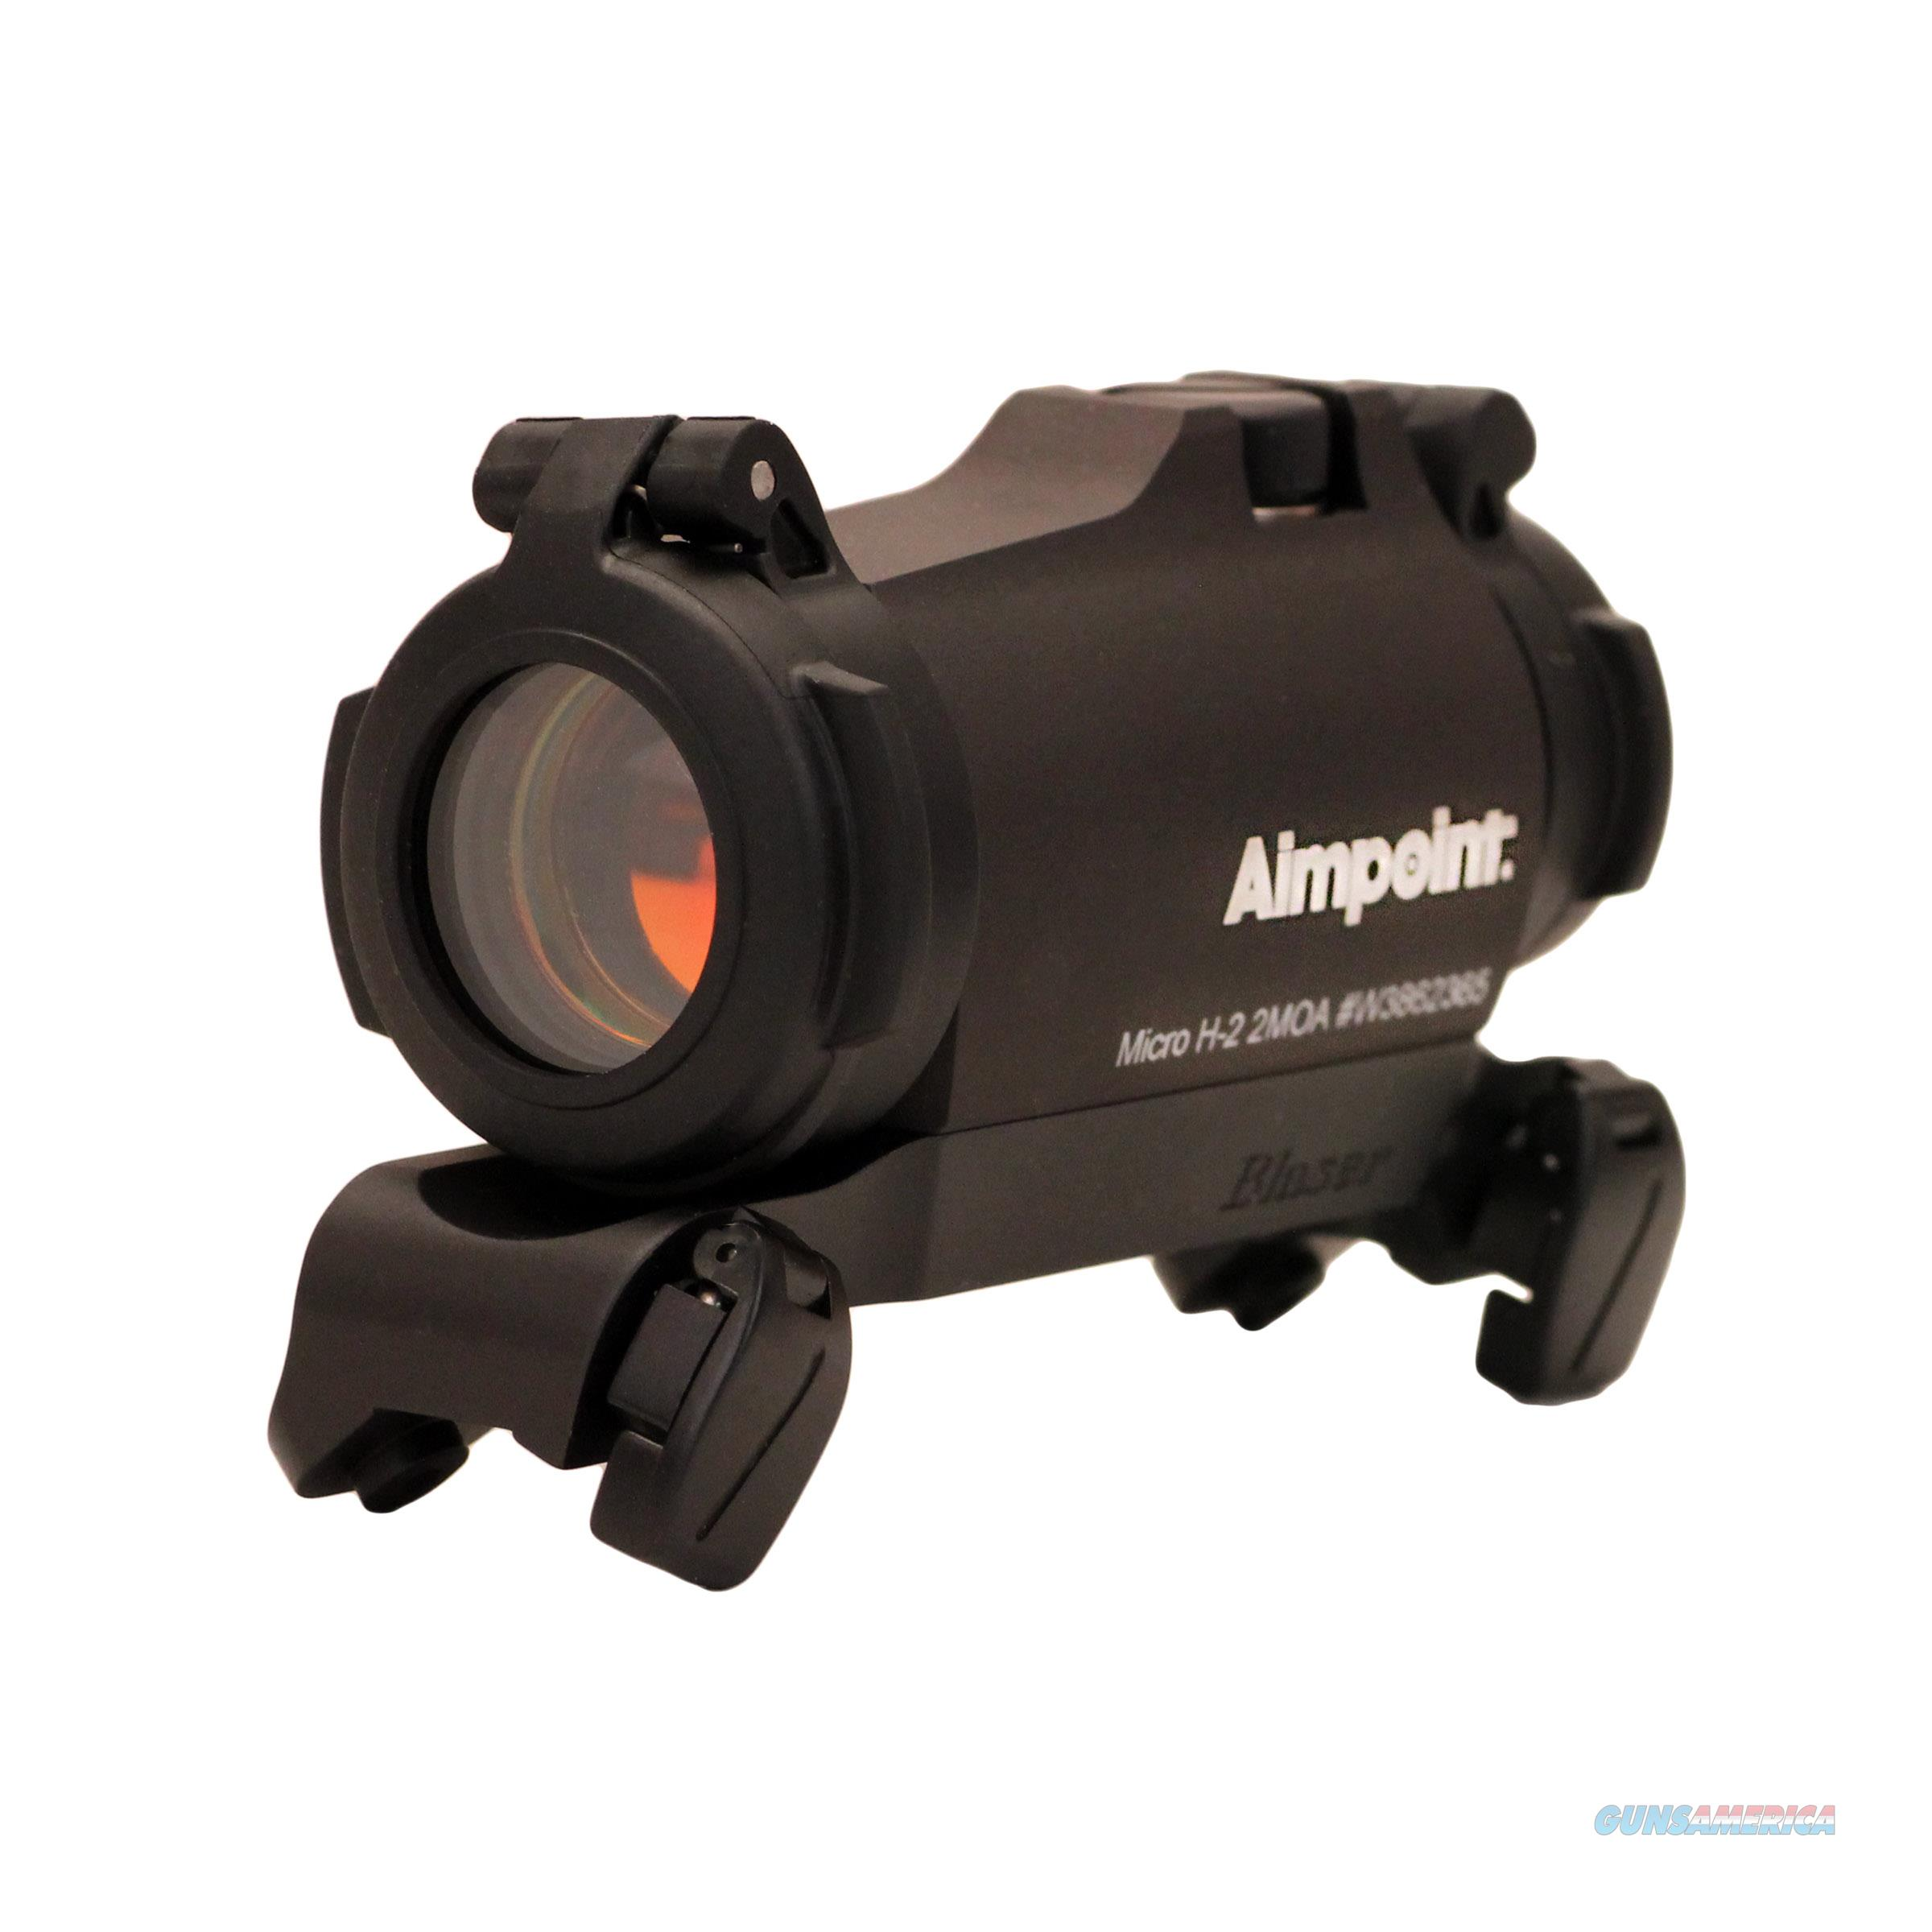 Aimpoint Micro H-2 200187  Non-Guns > Iron/Metal/Peep Sights